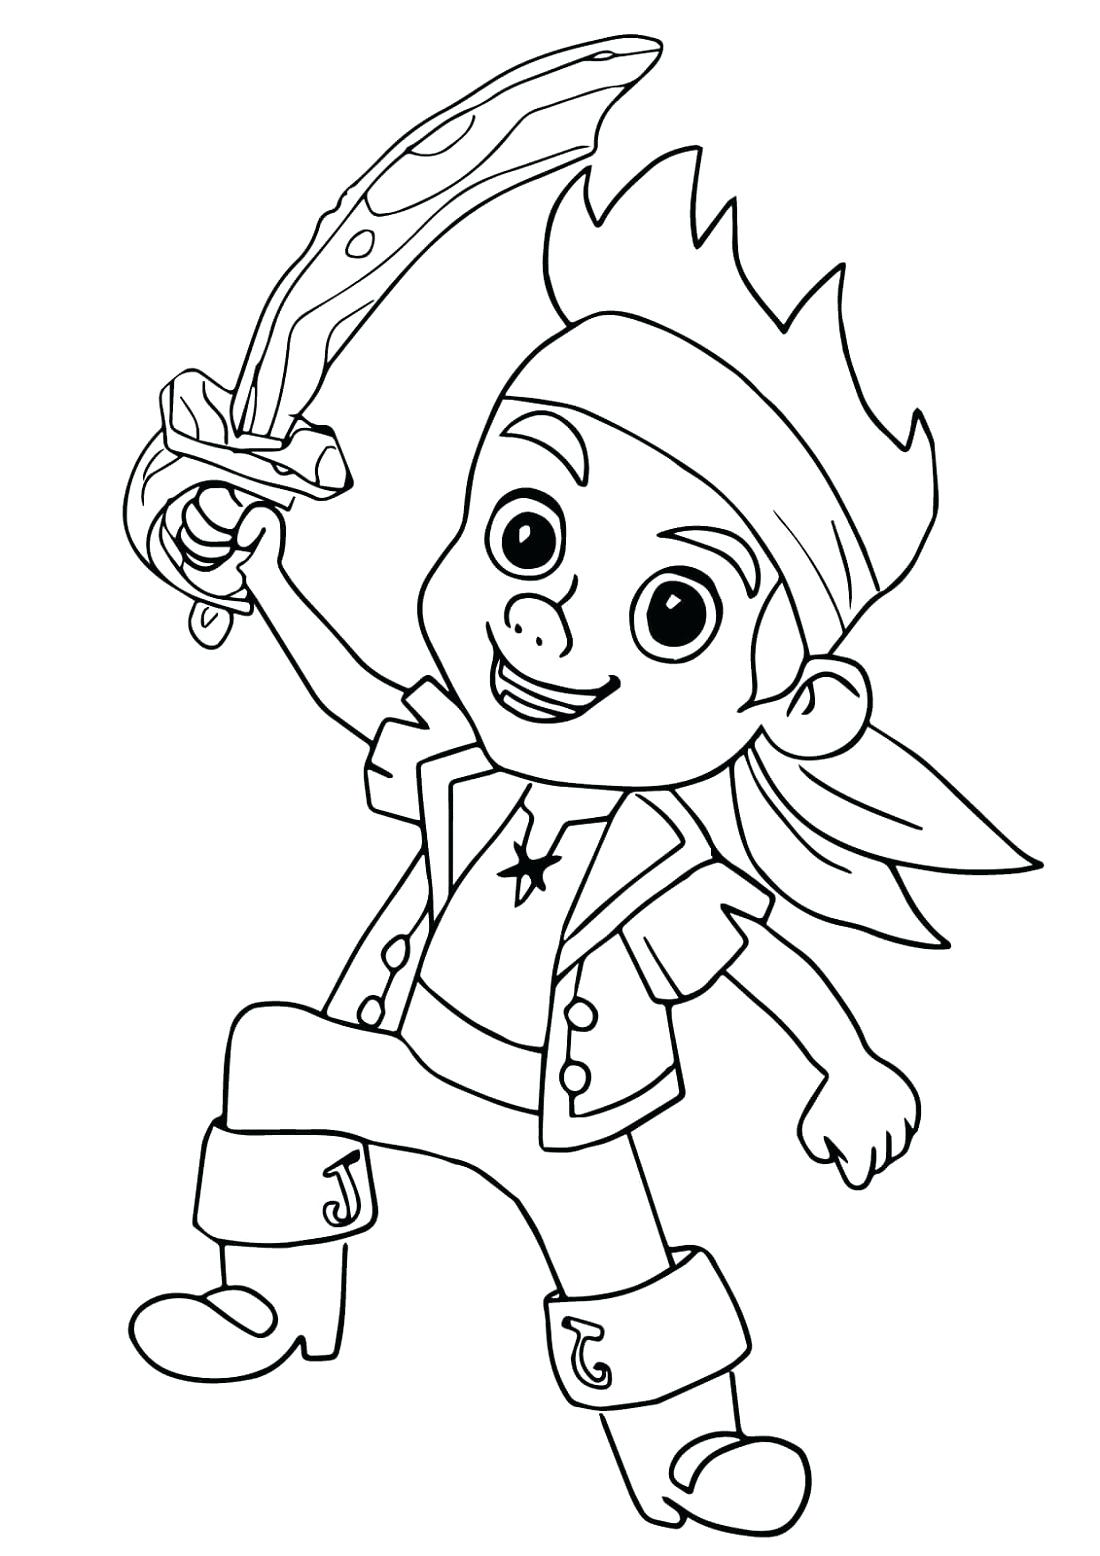 1100x1556 Coloring Albert Einstein Coloring Pages Pirate Color Easy. Albert